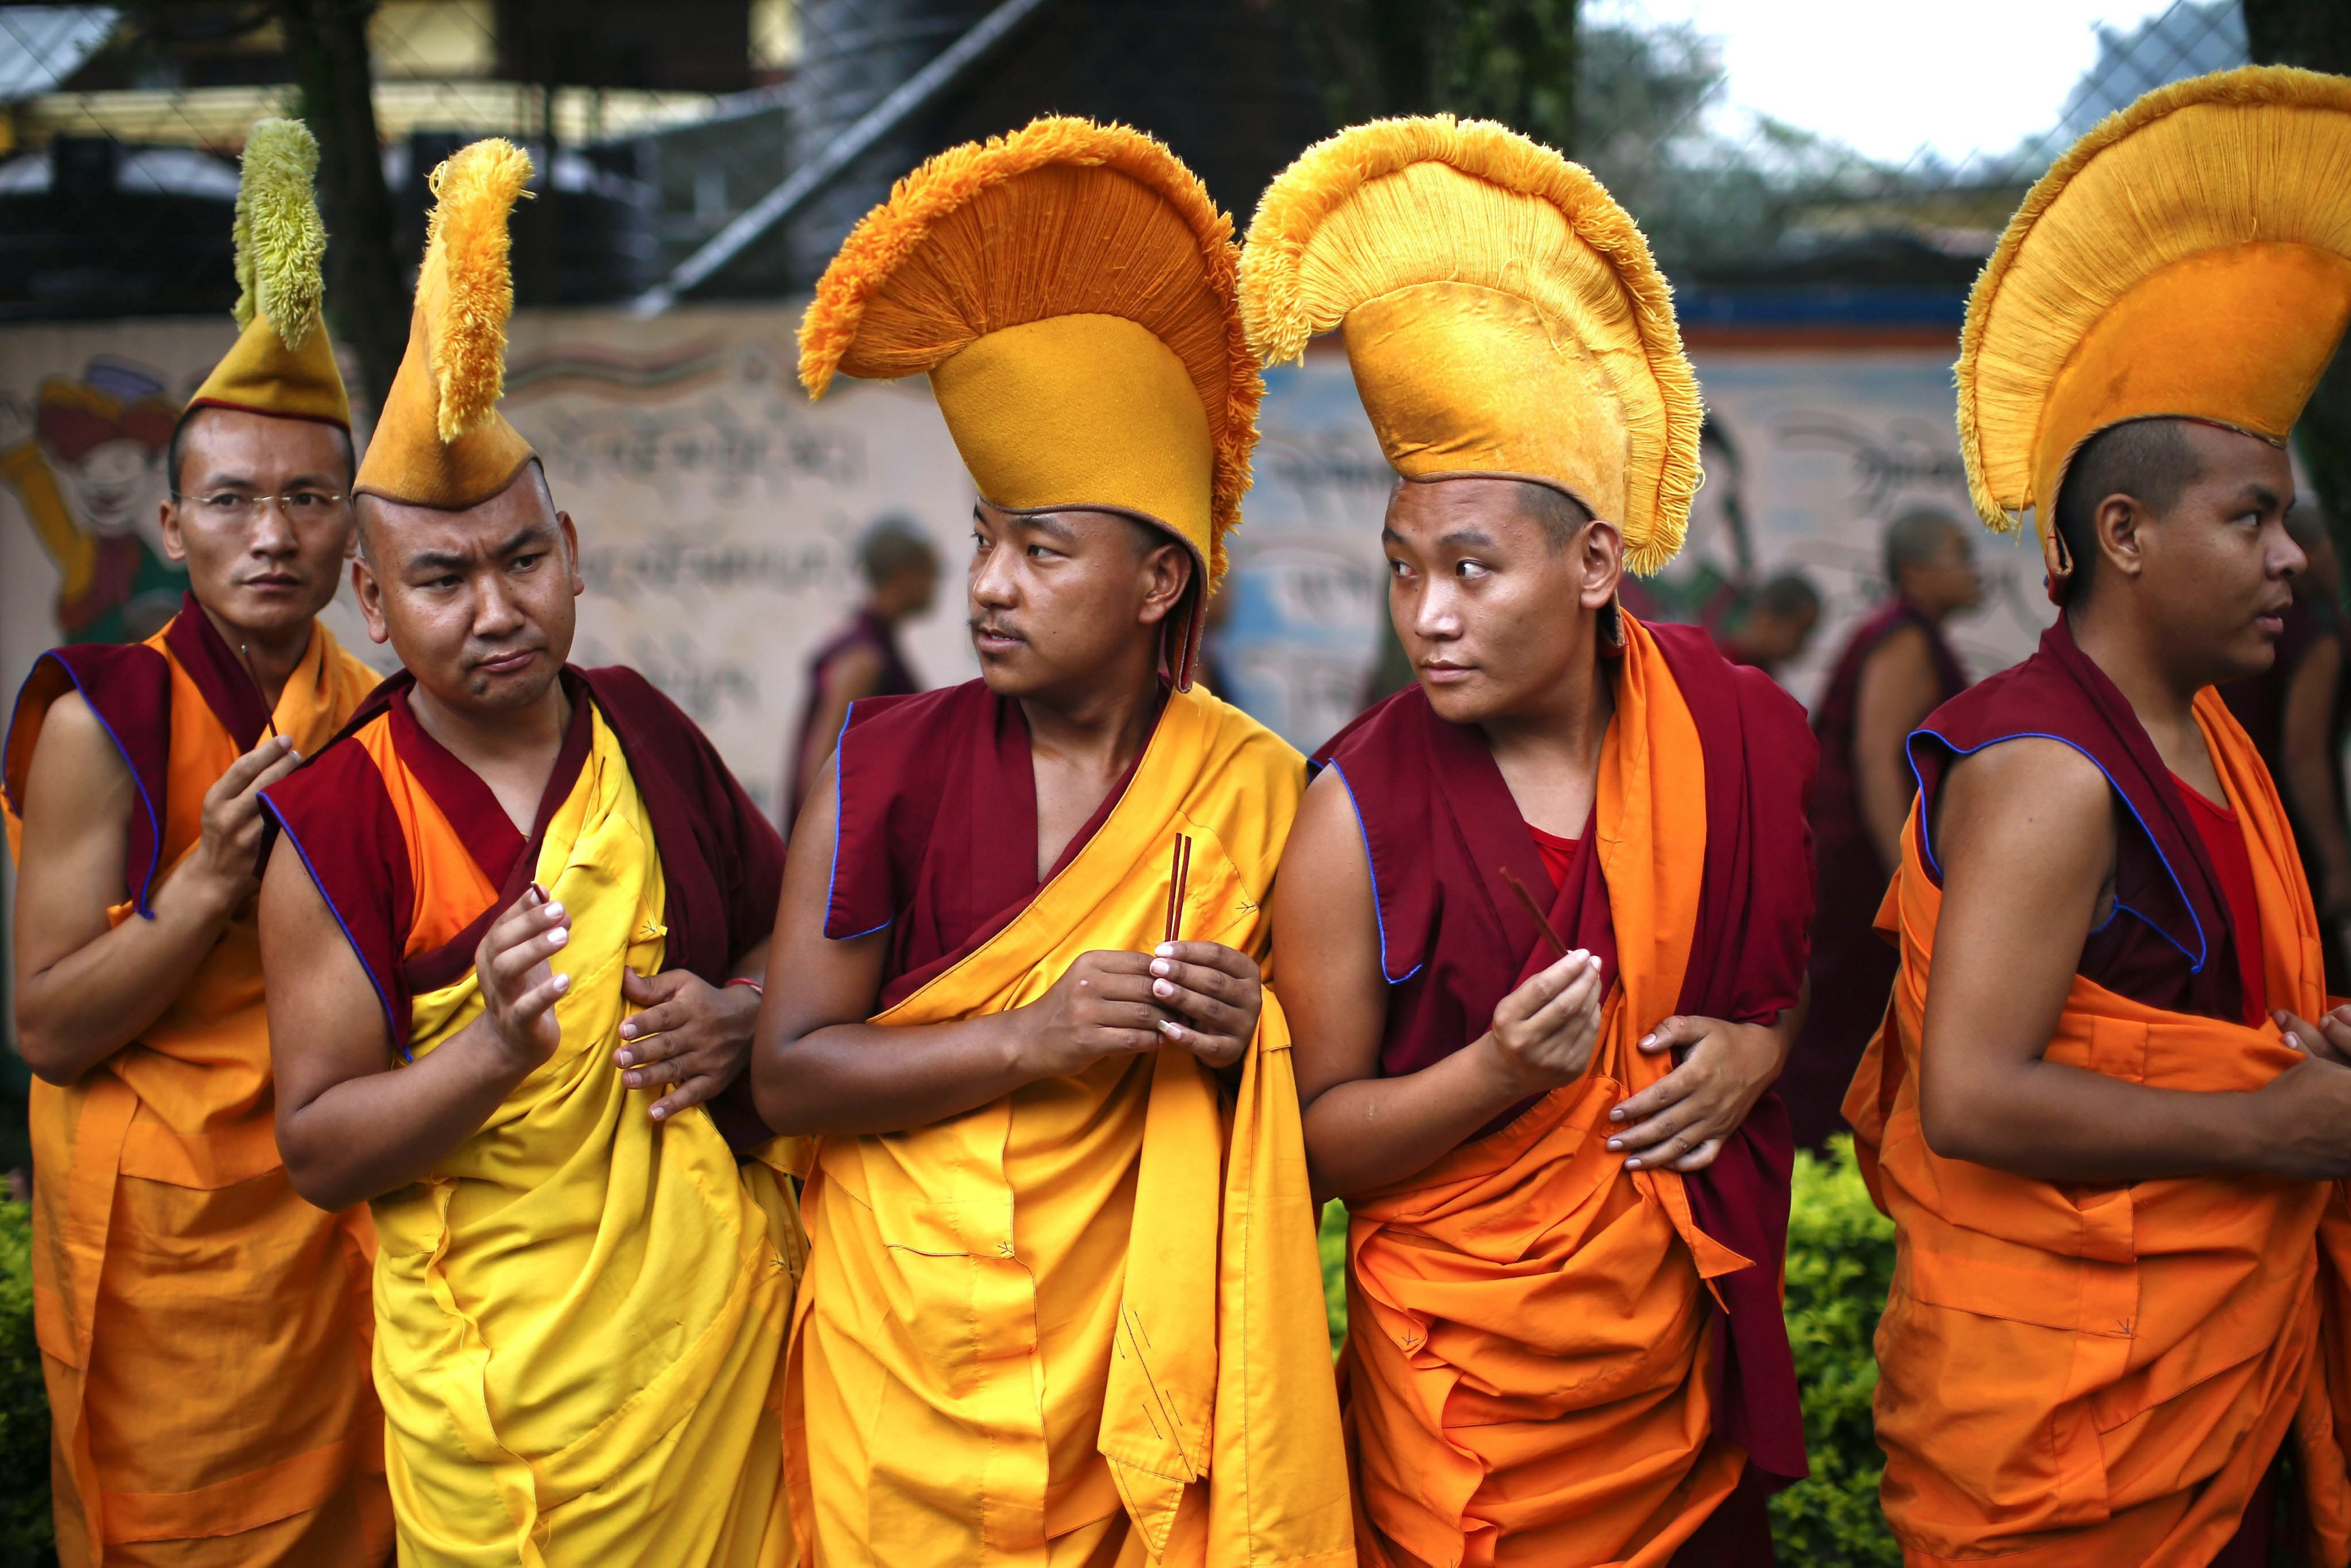 Exiled Tibetan monks attend a procession for the Tibetan spiritual leader the Dalai Lama's 80th birthday at Namgyal School  in Kathmandu on July 6, 2015.